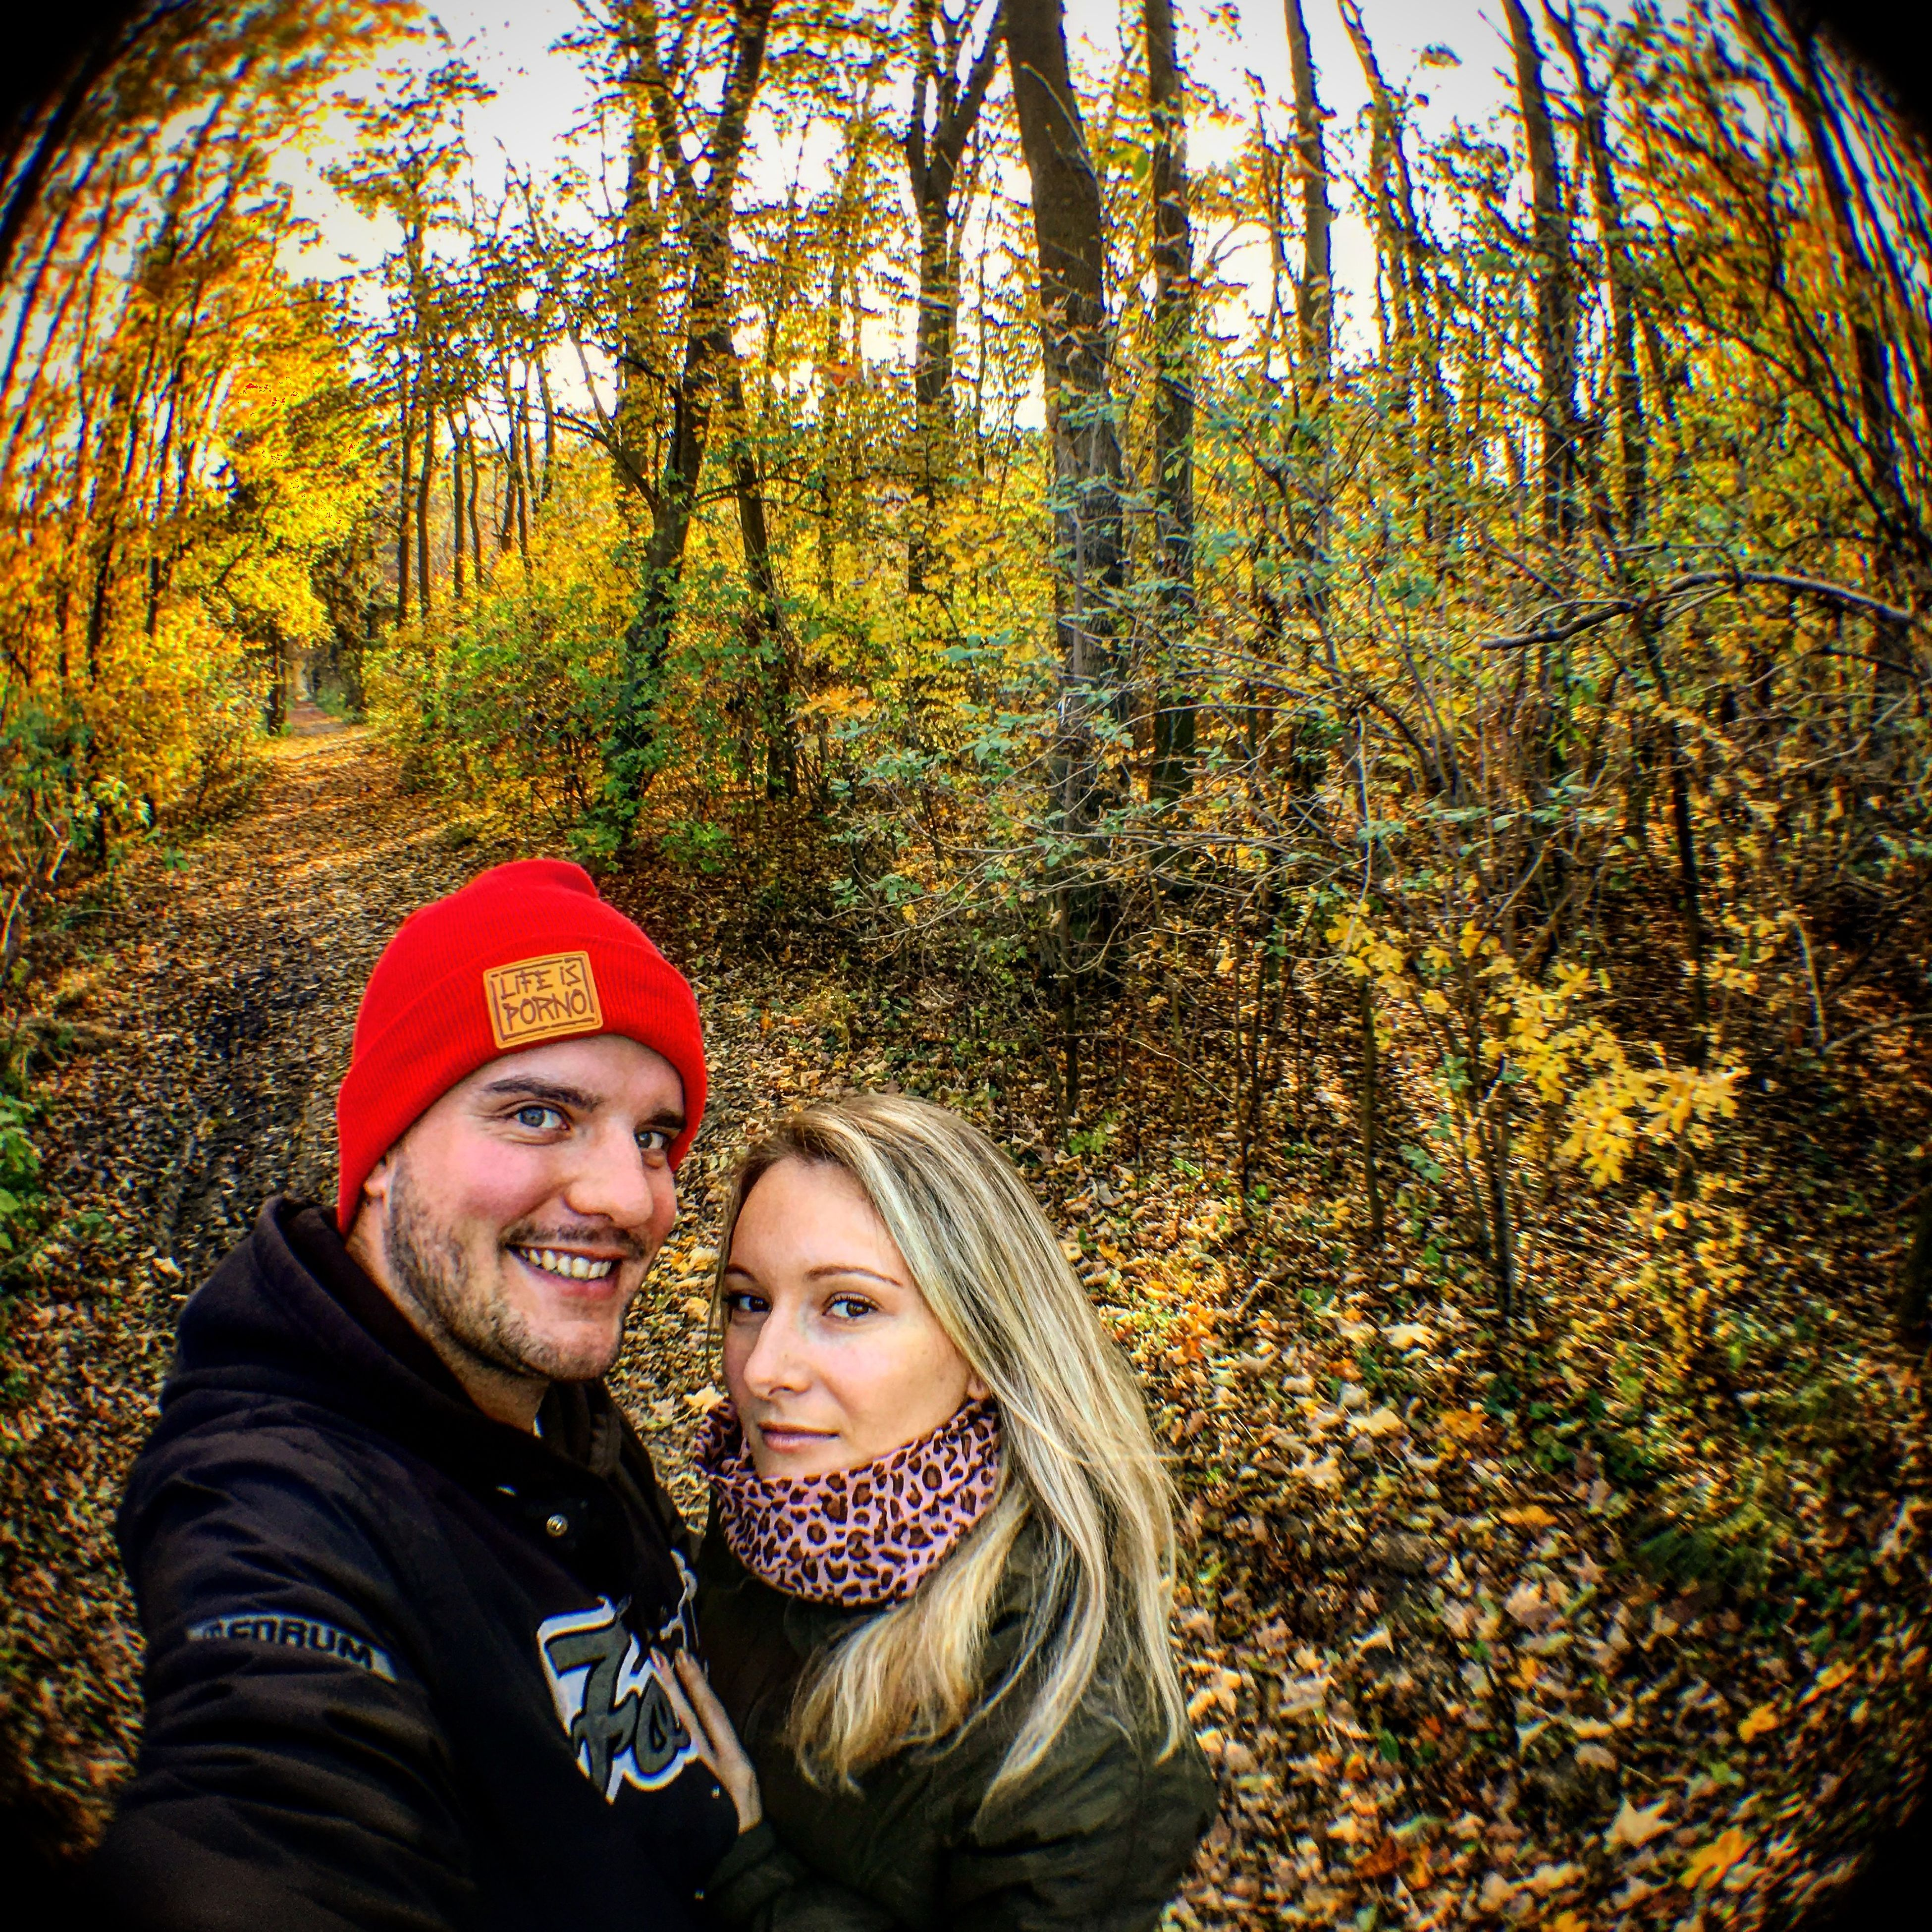 IPS2015Fall Fall Autumn Walking Around Forest Love Photowithiphone6s Fisheye FishEyeEm Lifeisporno Forumsnowboards  Showcase: November Learn & Shoot: Simplicity